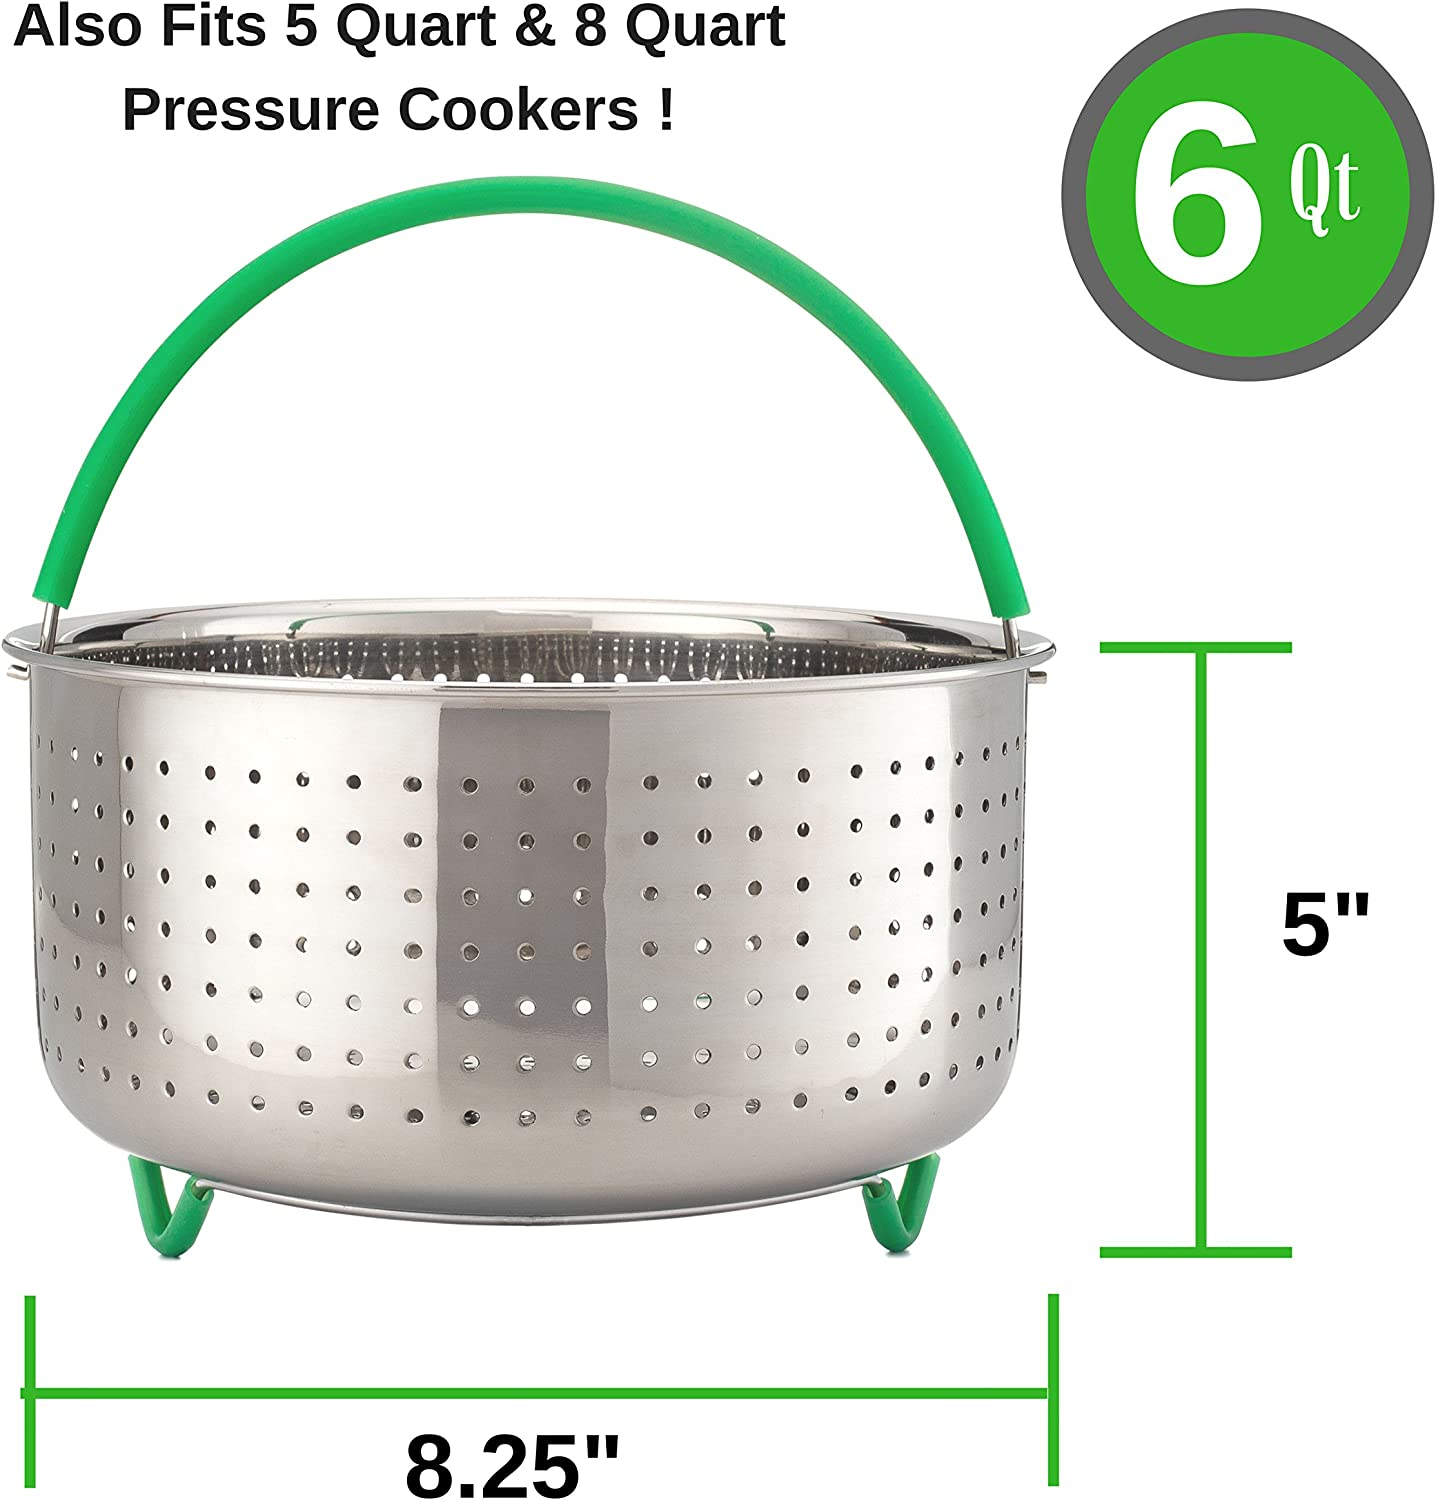 Fits Instapot The Original GREEN STEAM 6 qt Instant Pot Steamer Basket Insert Accessories Stainless Steel Other Pressure Cookers Silicone Handle /& Legs BONUS Recipe Book Also Fits 5qt /& 8qt PRIZE HOME